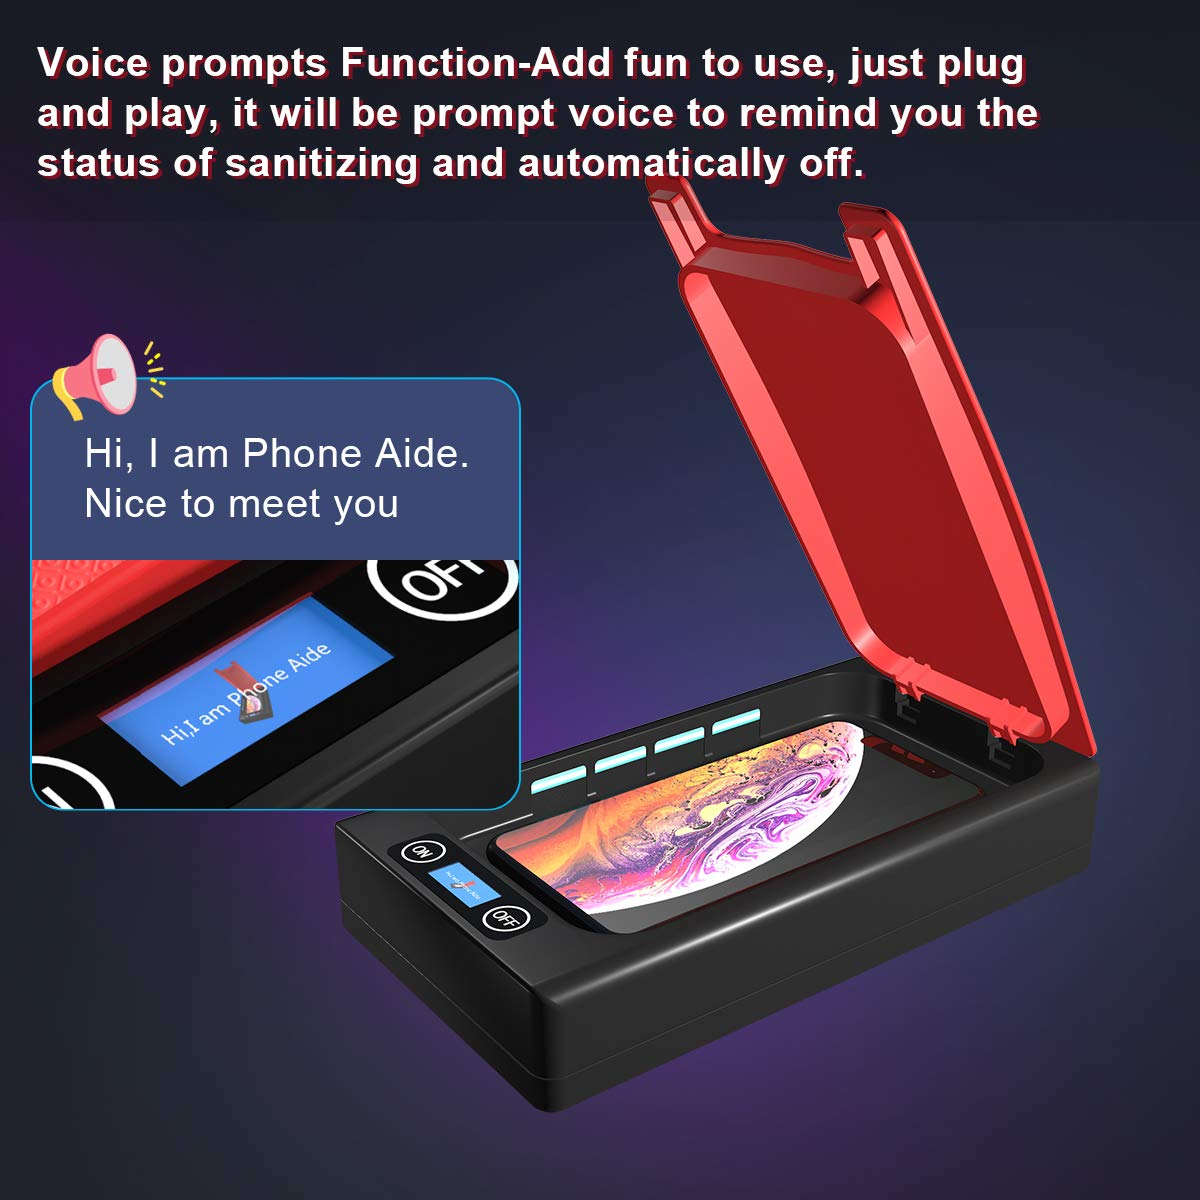 SOELAND Phone Aide Portable Smartphone Sterlizer Cleaner Case with Voice Prompt Function Cell Phone Disinfection for iPhone Android Mobile Phone Toothbrush Watches Jewelry UV Phone Sanitizer